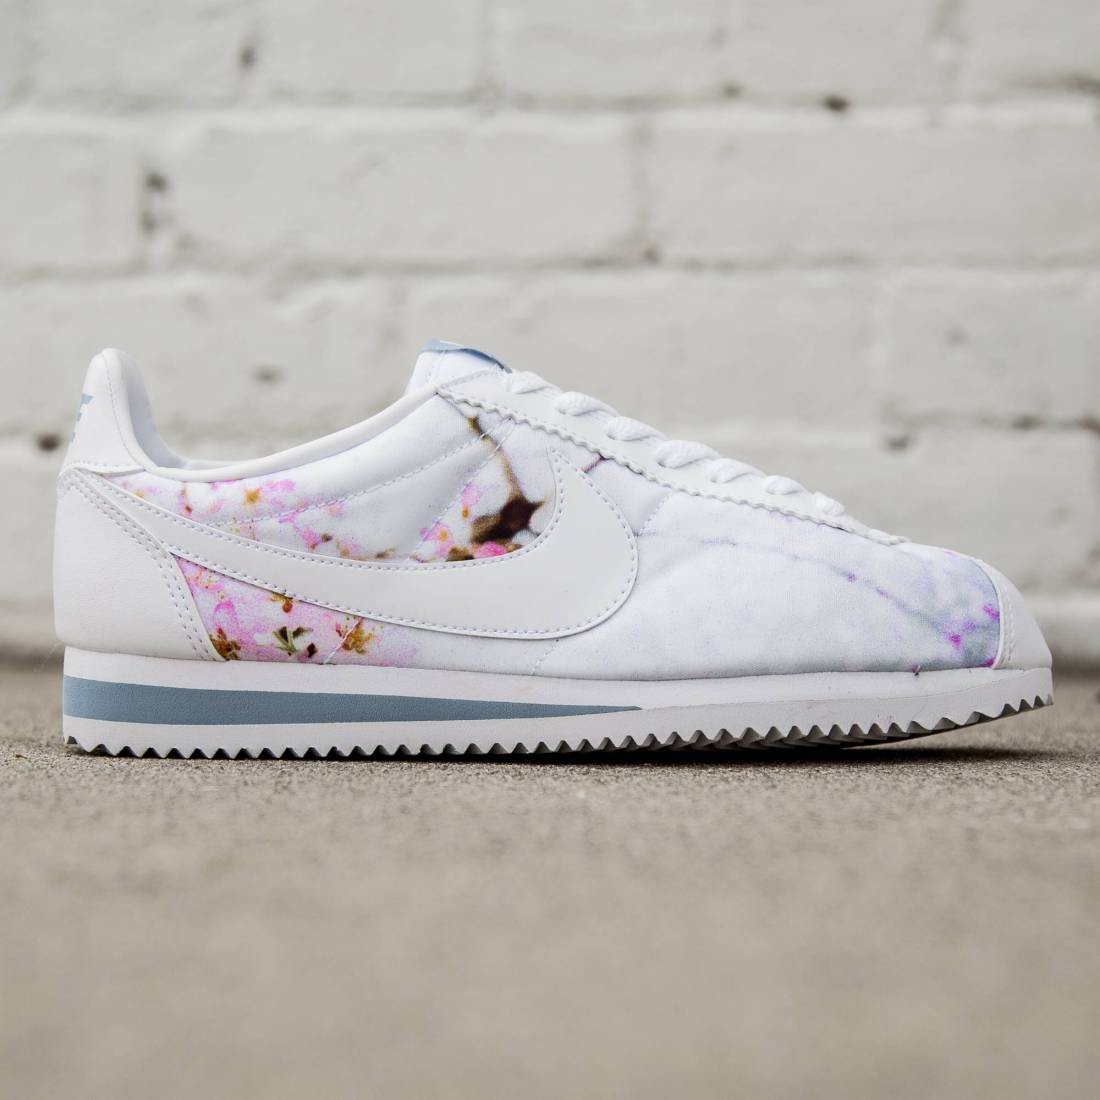 Nike Women Classic Cortez - Cherry Blossom (white   university blue) 9bcf059ce